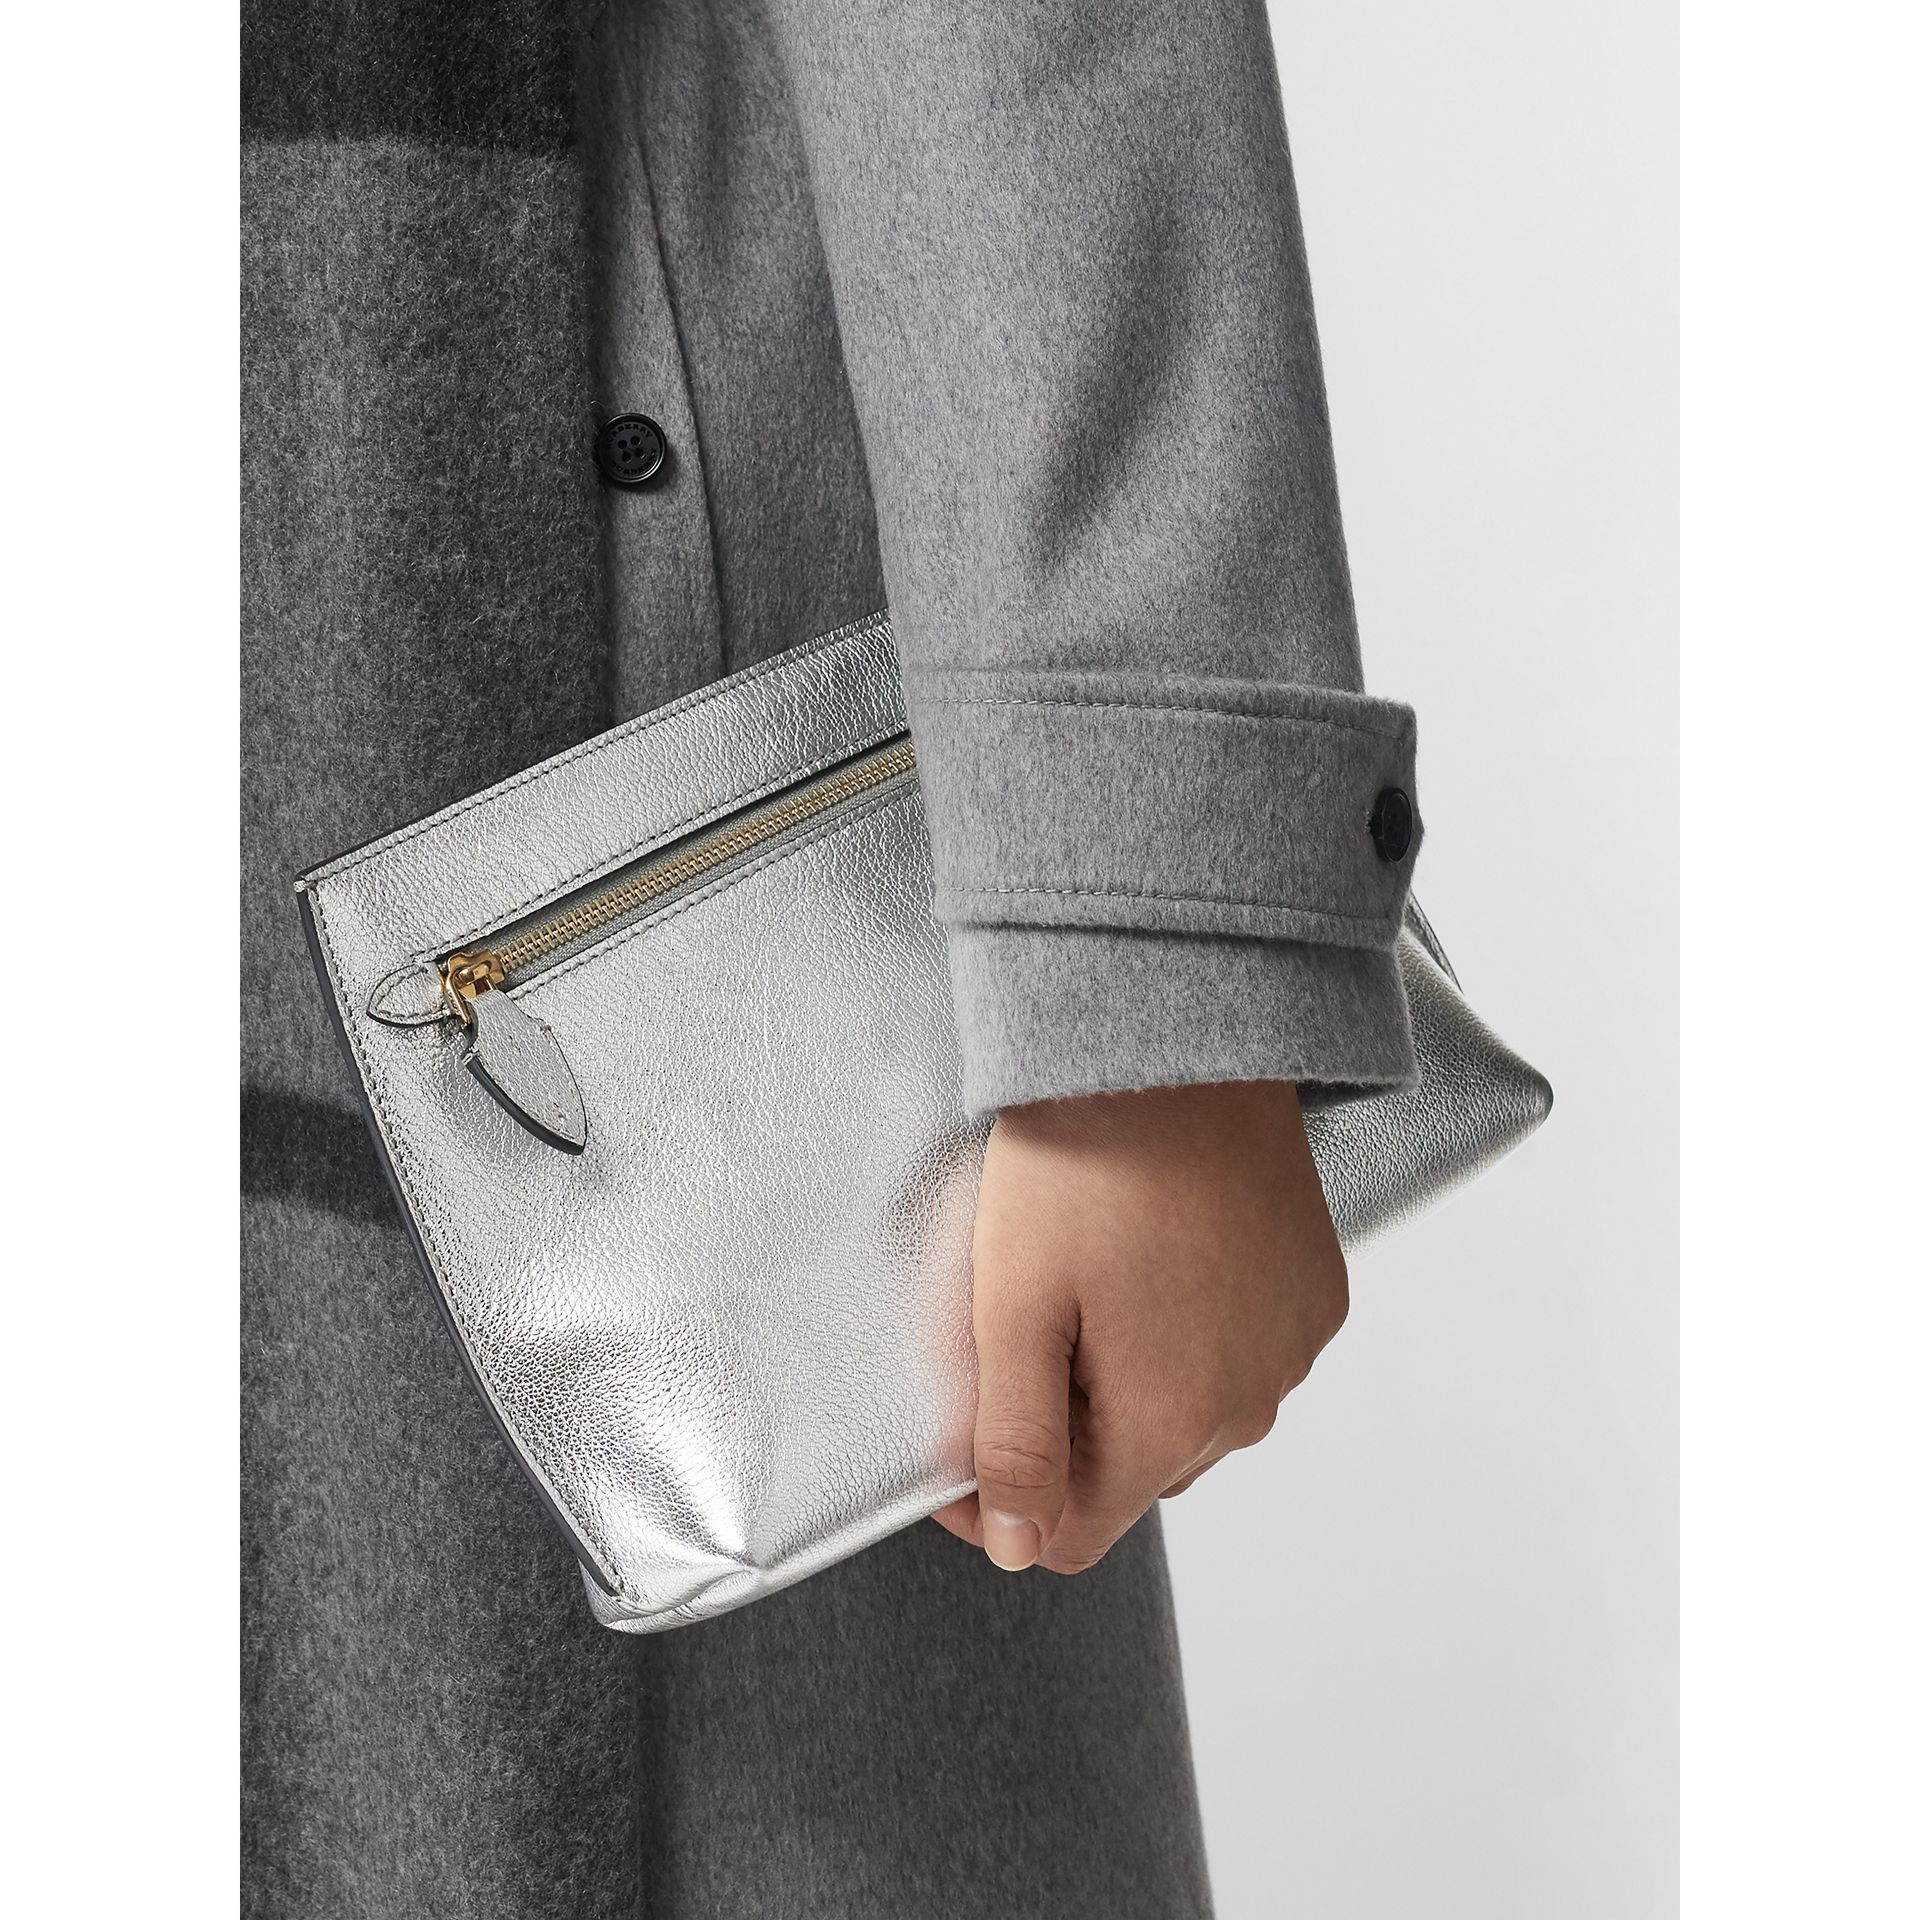 Metallic Leather Wristlet Clutch in Silver - Women | Burberry Australia - gallery image 3